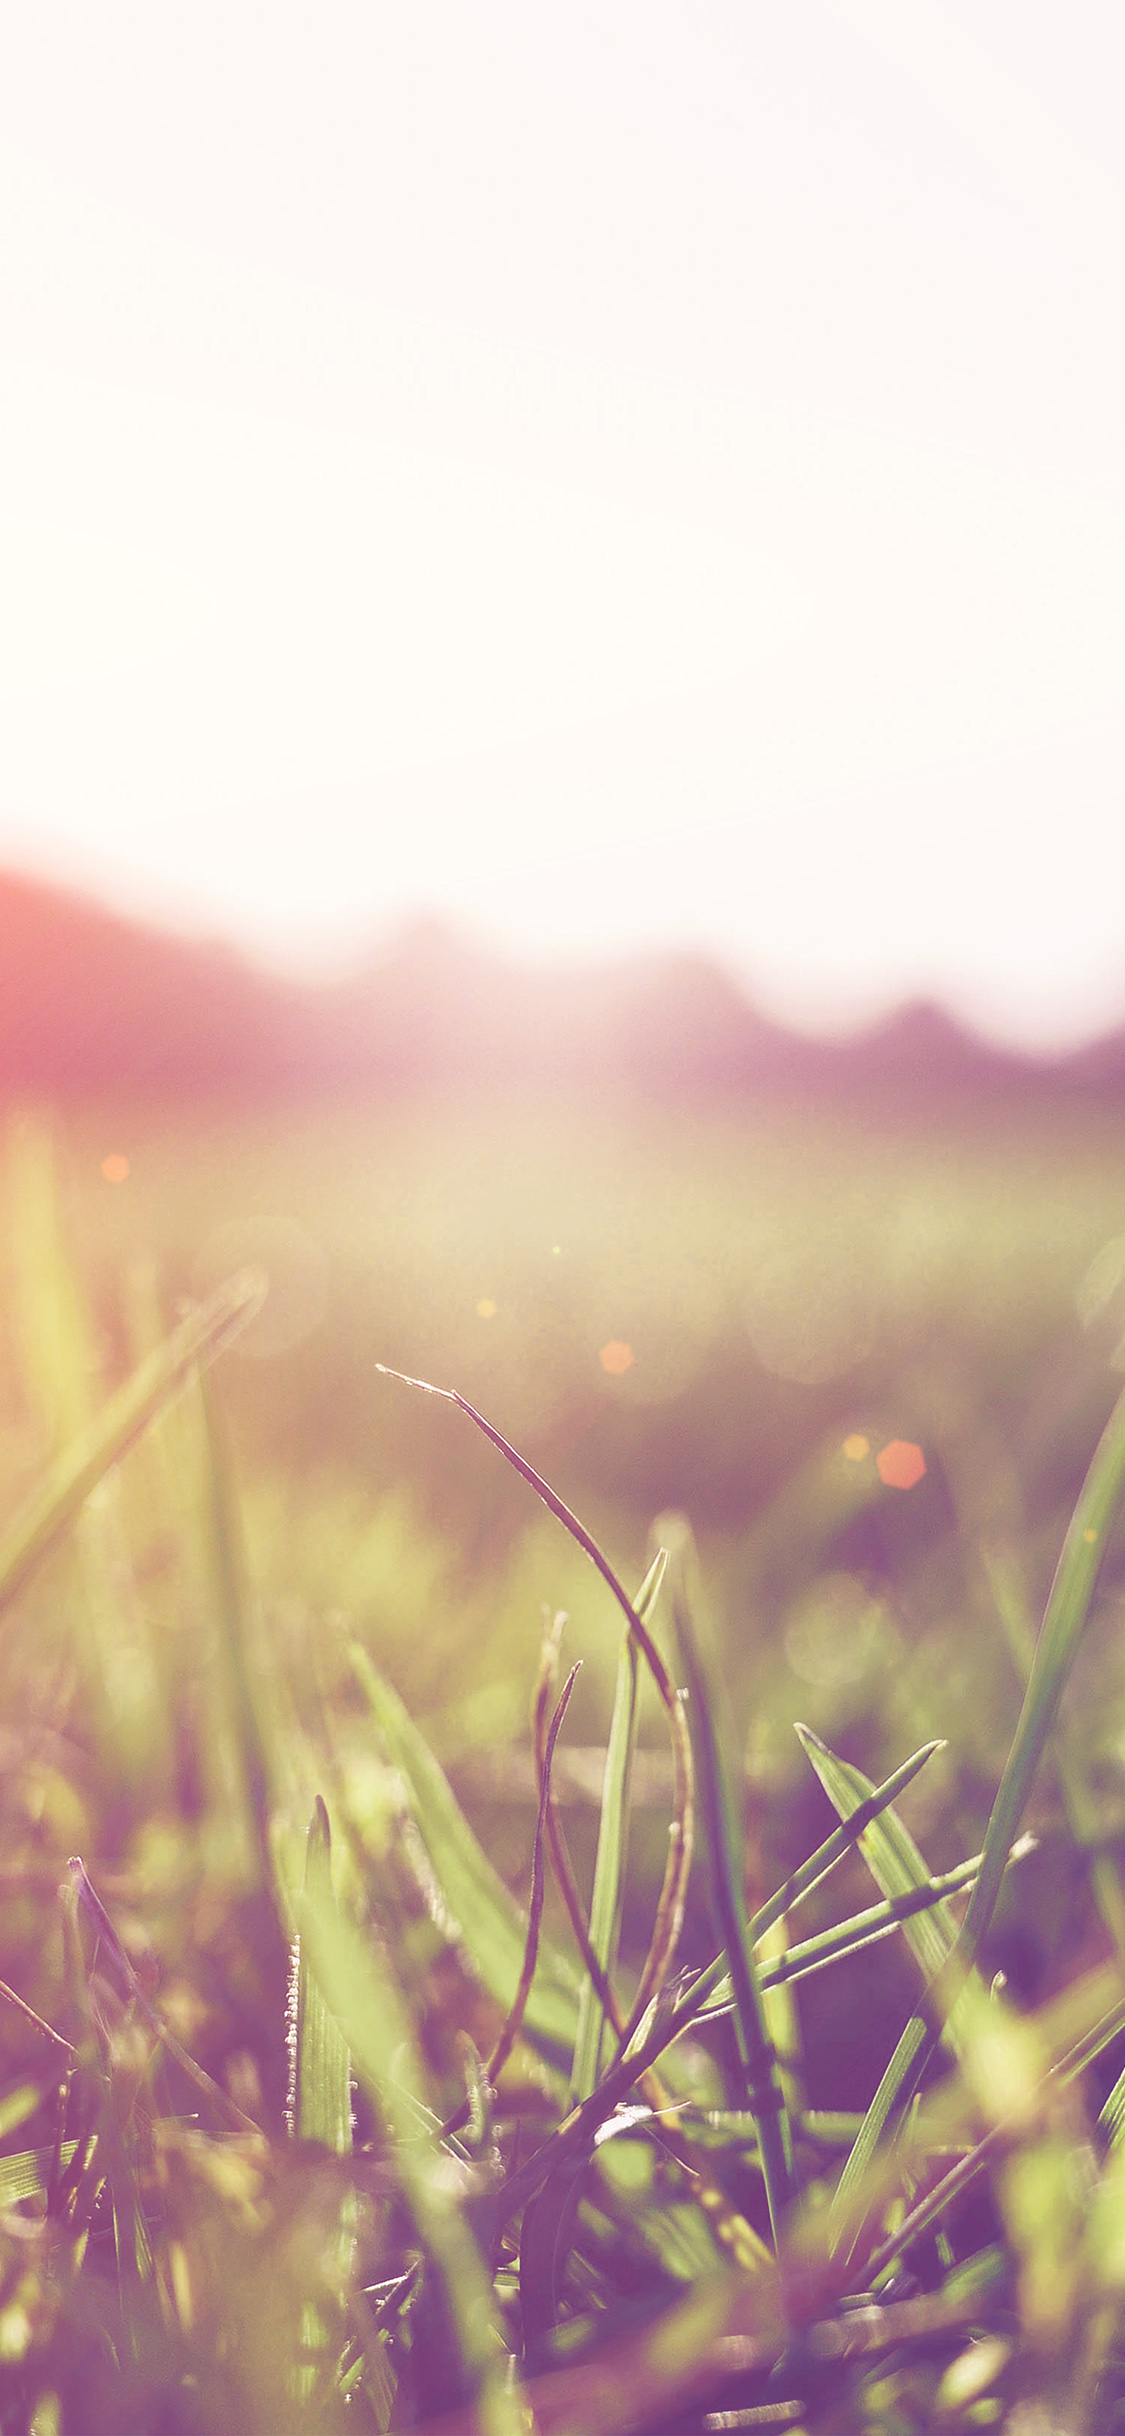 iPhonexpapers.com-Apple-iPhone-wallpaper-mw48-grass-green-orange-bokeh-light-summer-nature-flare